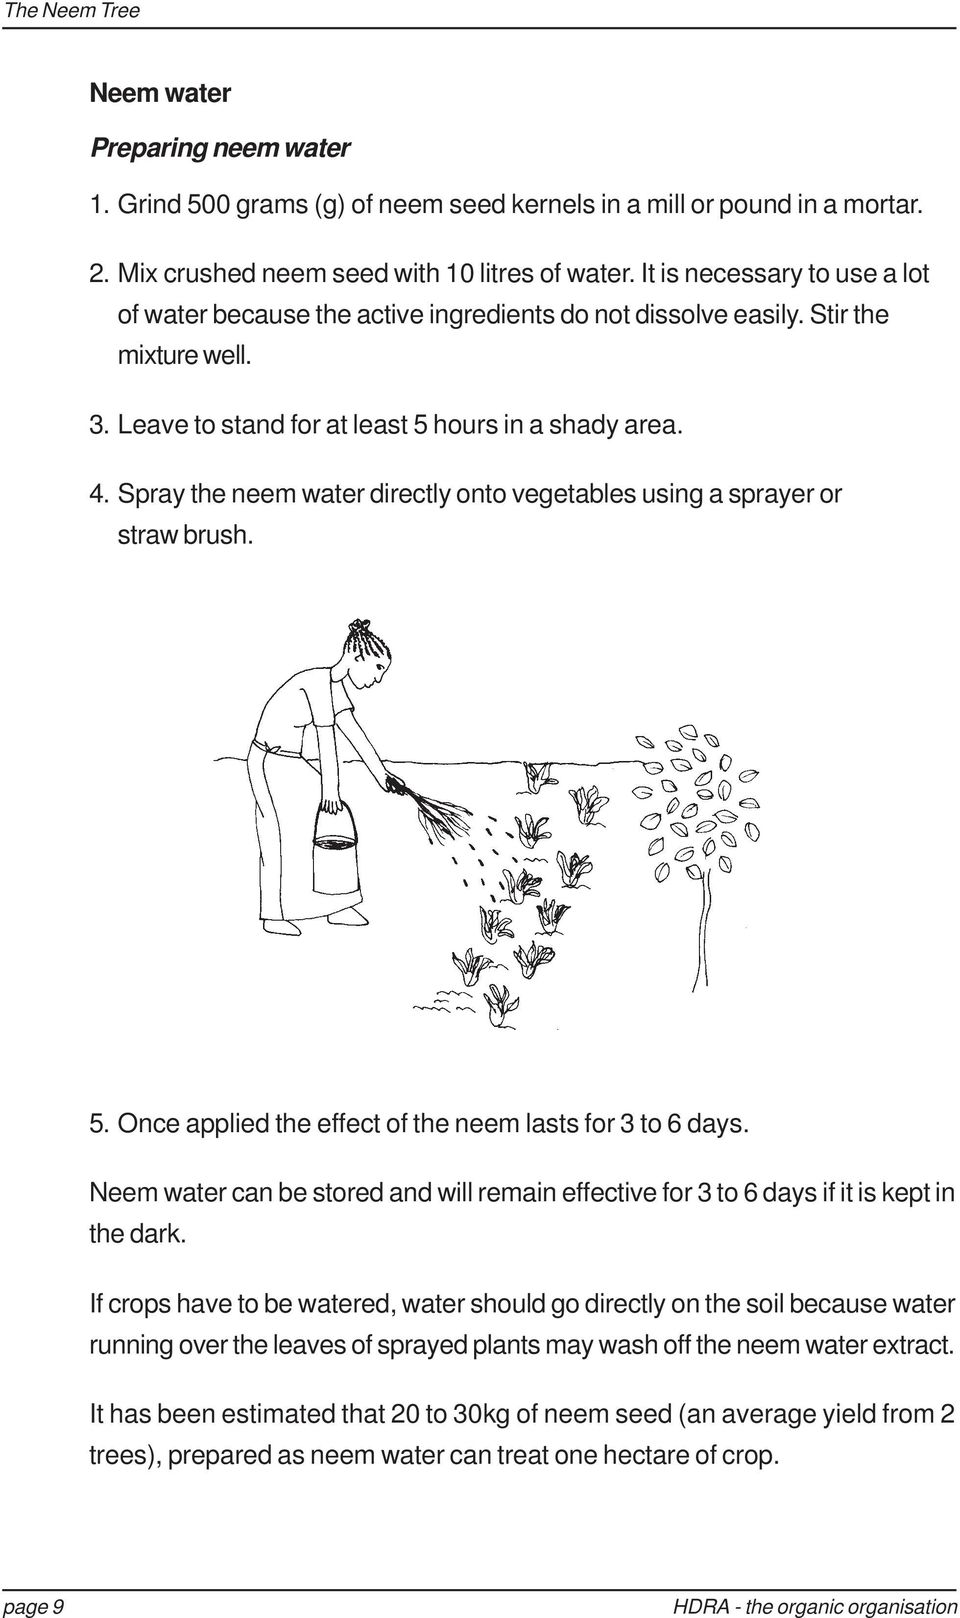 Spray the neem water directly onto vegetables using a sprayer or straw brush. 5. Once applied the effect of the neem lasts for 3 to 6 days.